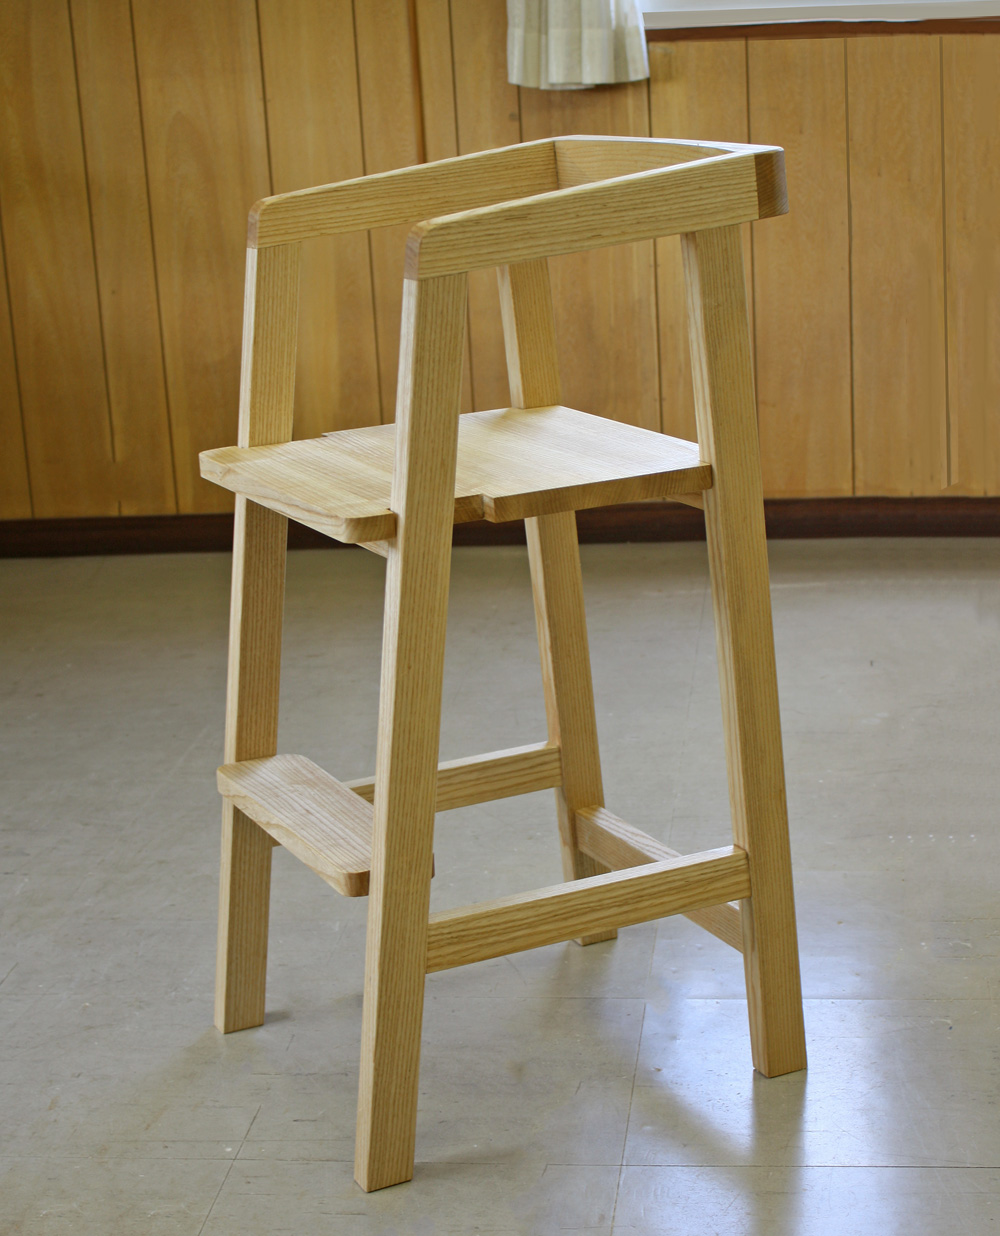 Kids' Chair for kitchen counter